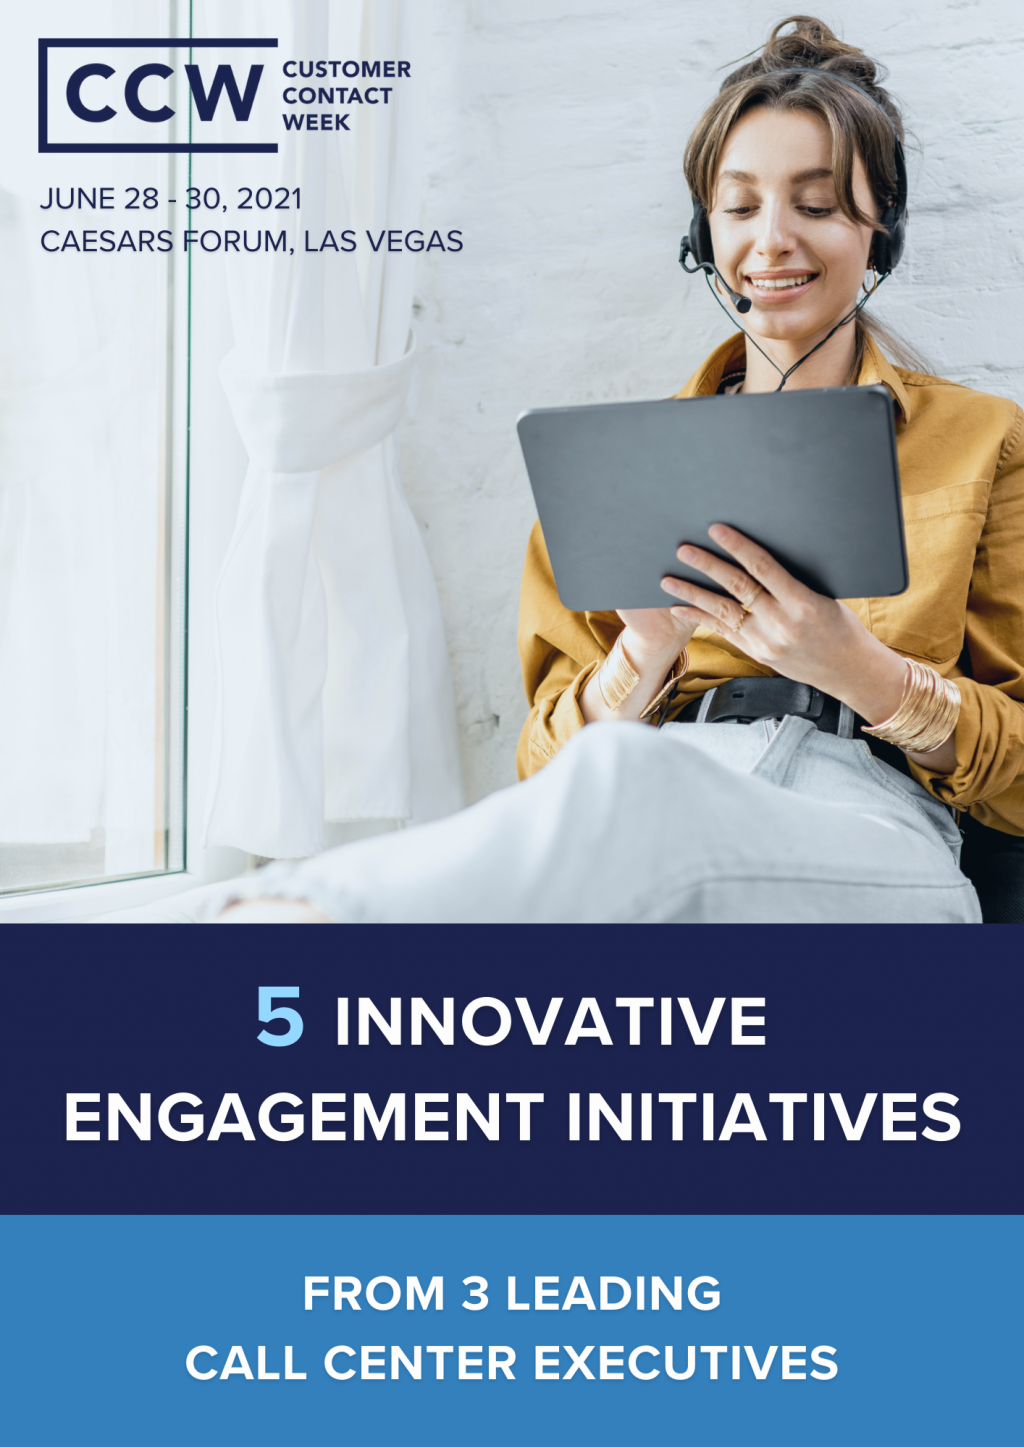 5 Innovative Engagement Initiatives From 3 Leading Executives